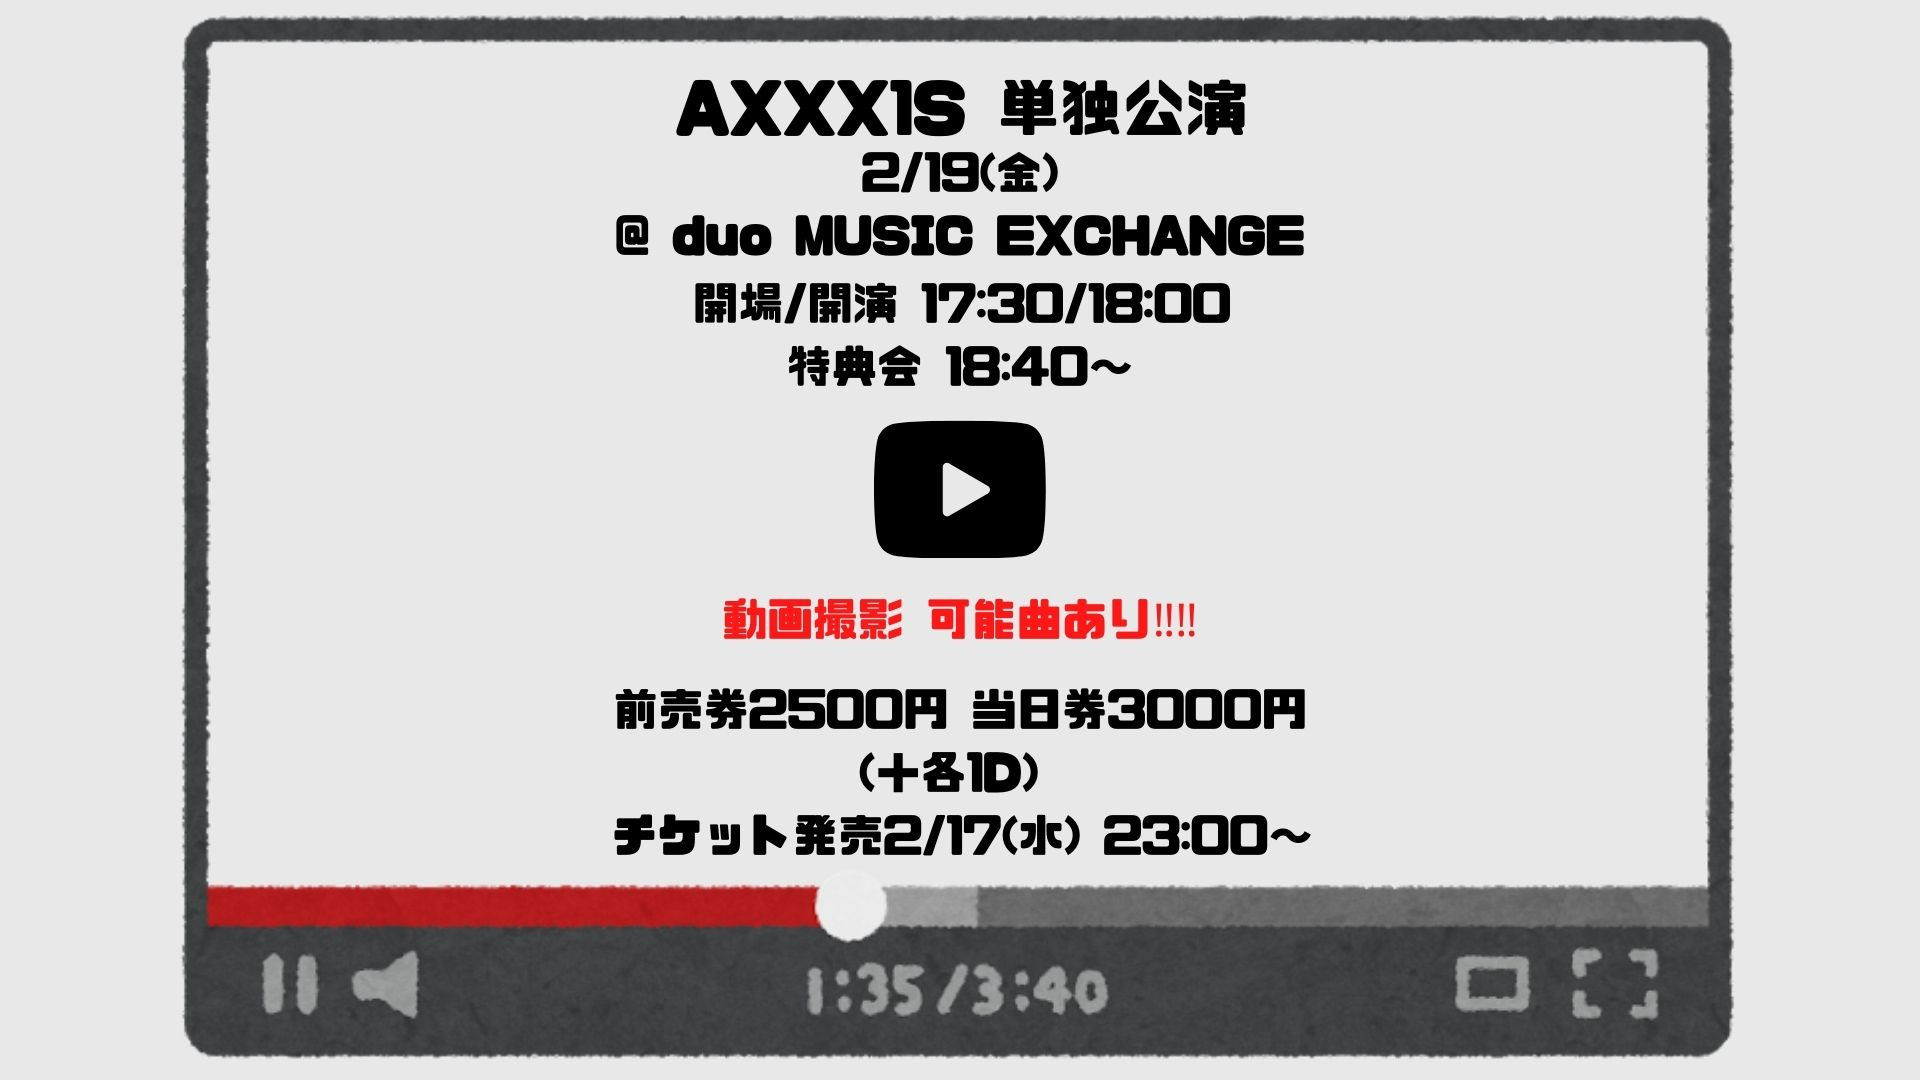 2/19 AXXX1S 単独公演 @duo MUSIC EXCHANGE